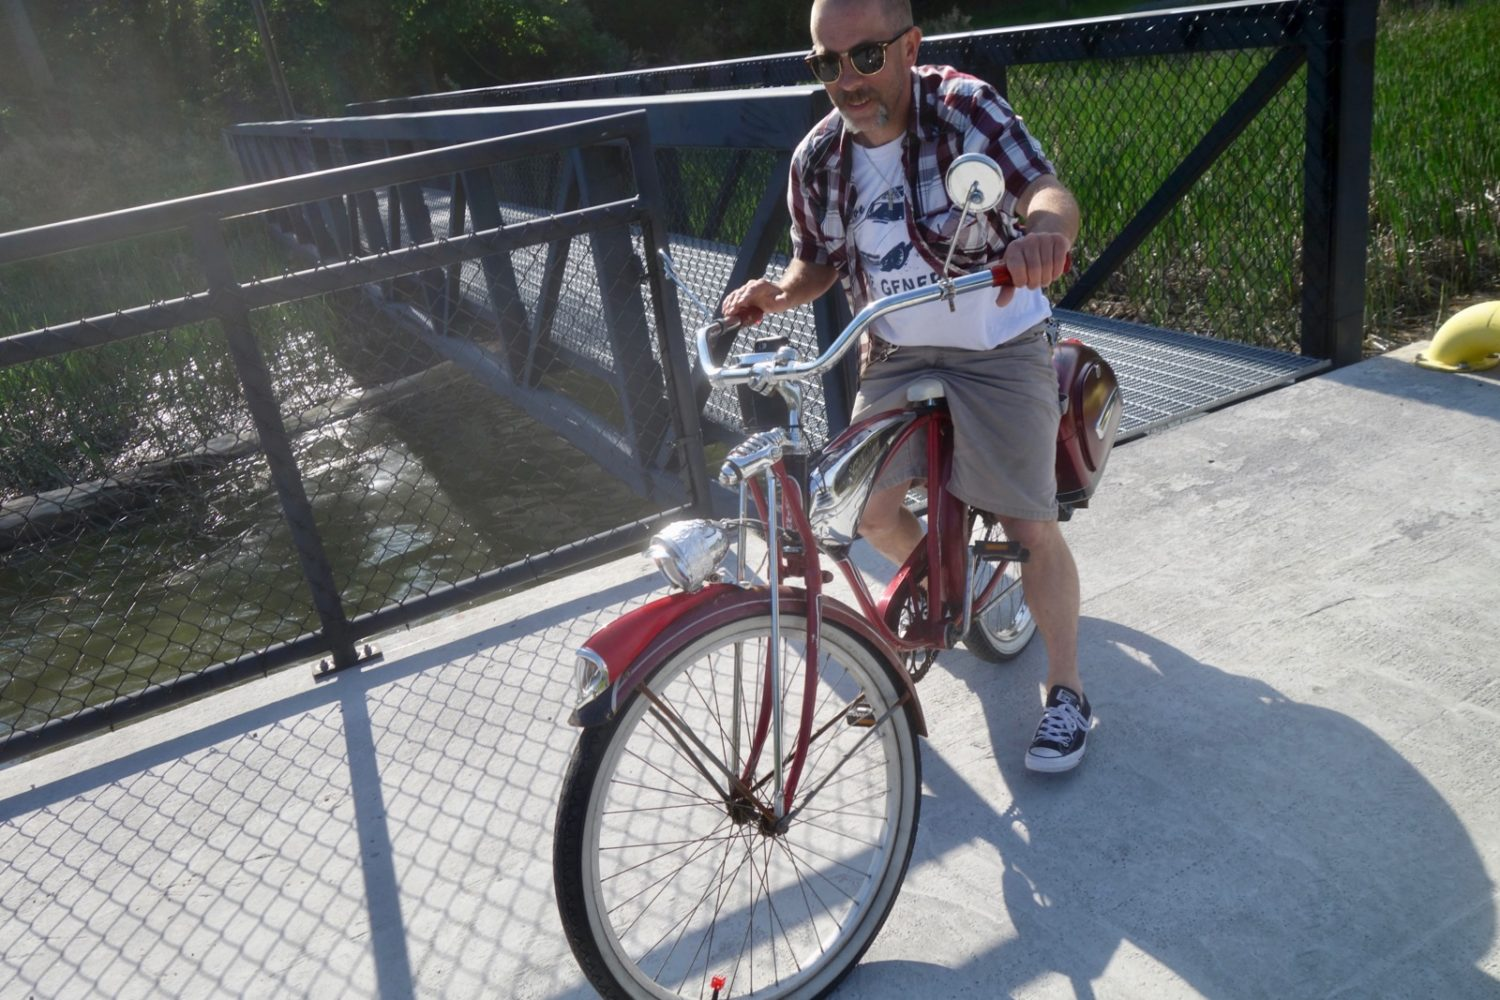 Man on red bicycle listening to Righteous Brothers at Turning Point Park in Rochester, New York